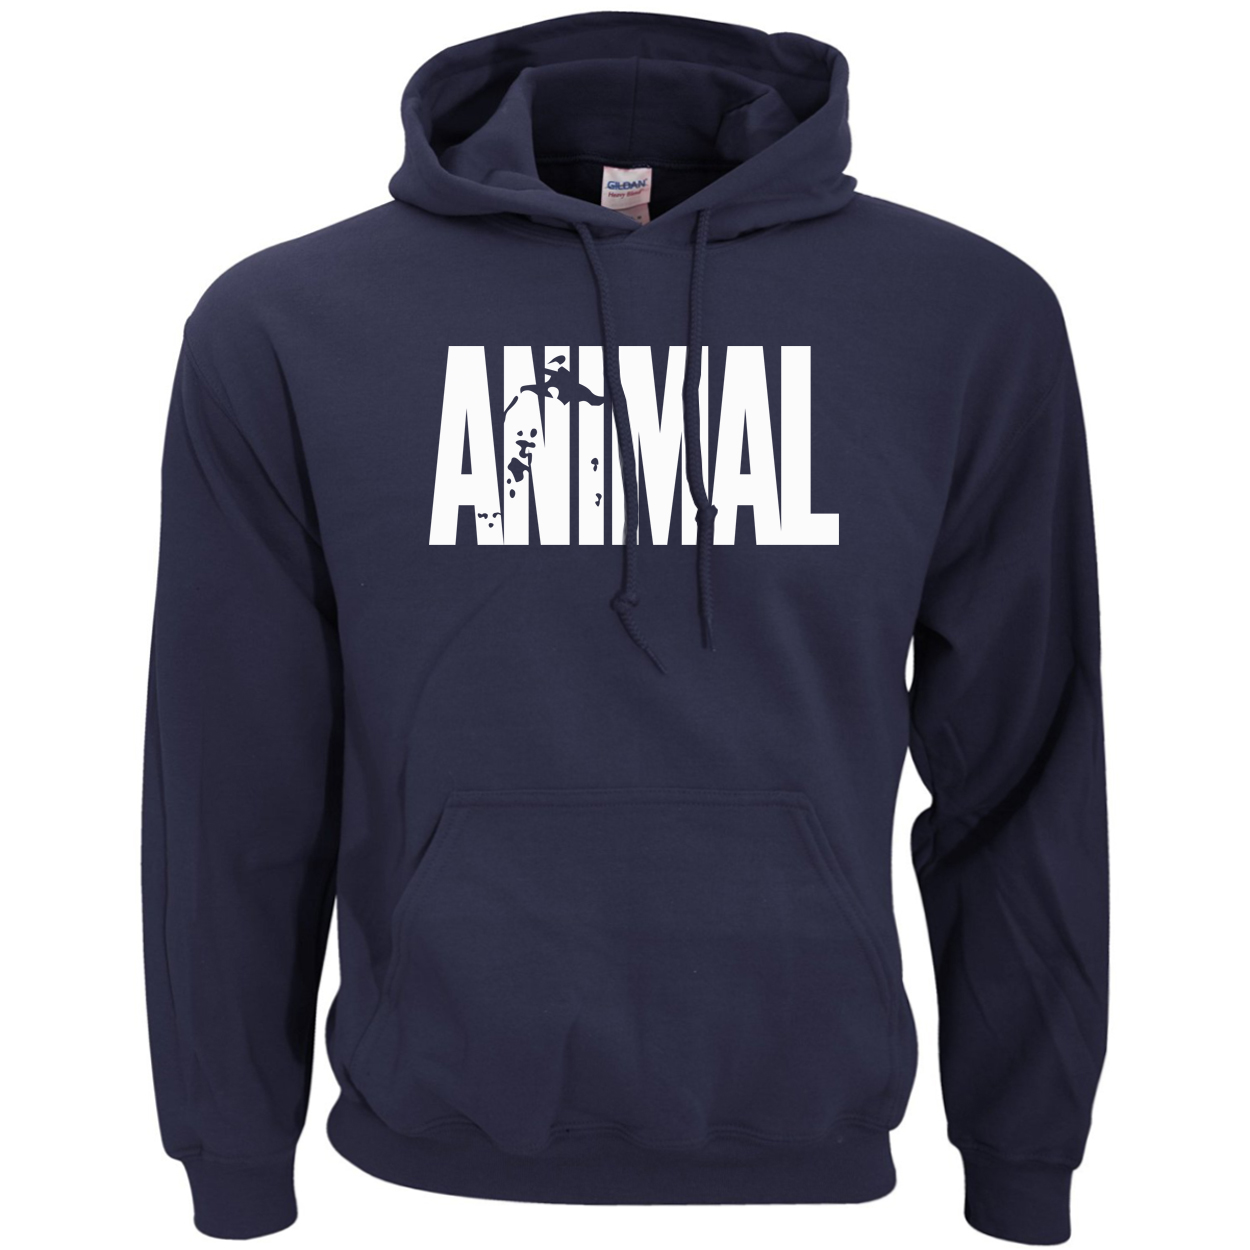 Bodybuilding Animal Hoodies Men Sports Fitness Loose Fit Gyms Musclefitting Male Sweatshirt 2019 Spring Winter Fleece Hoodie